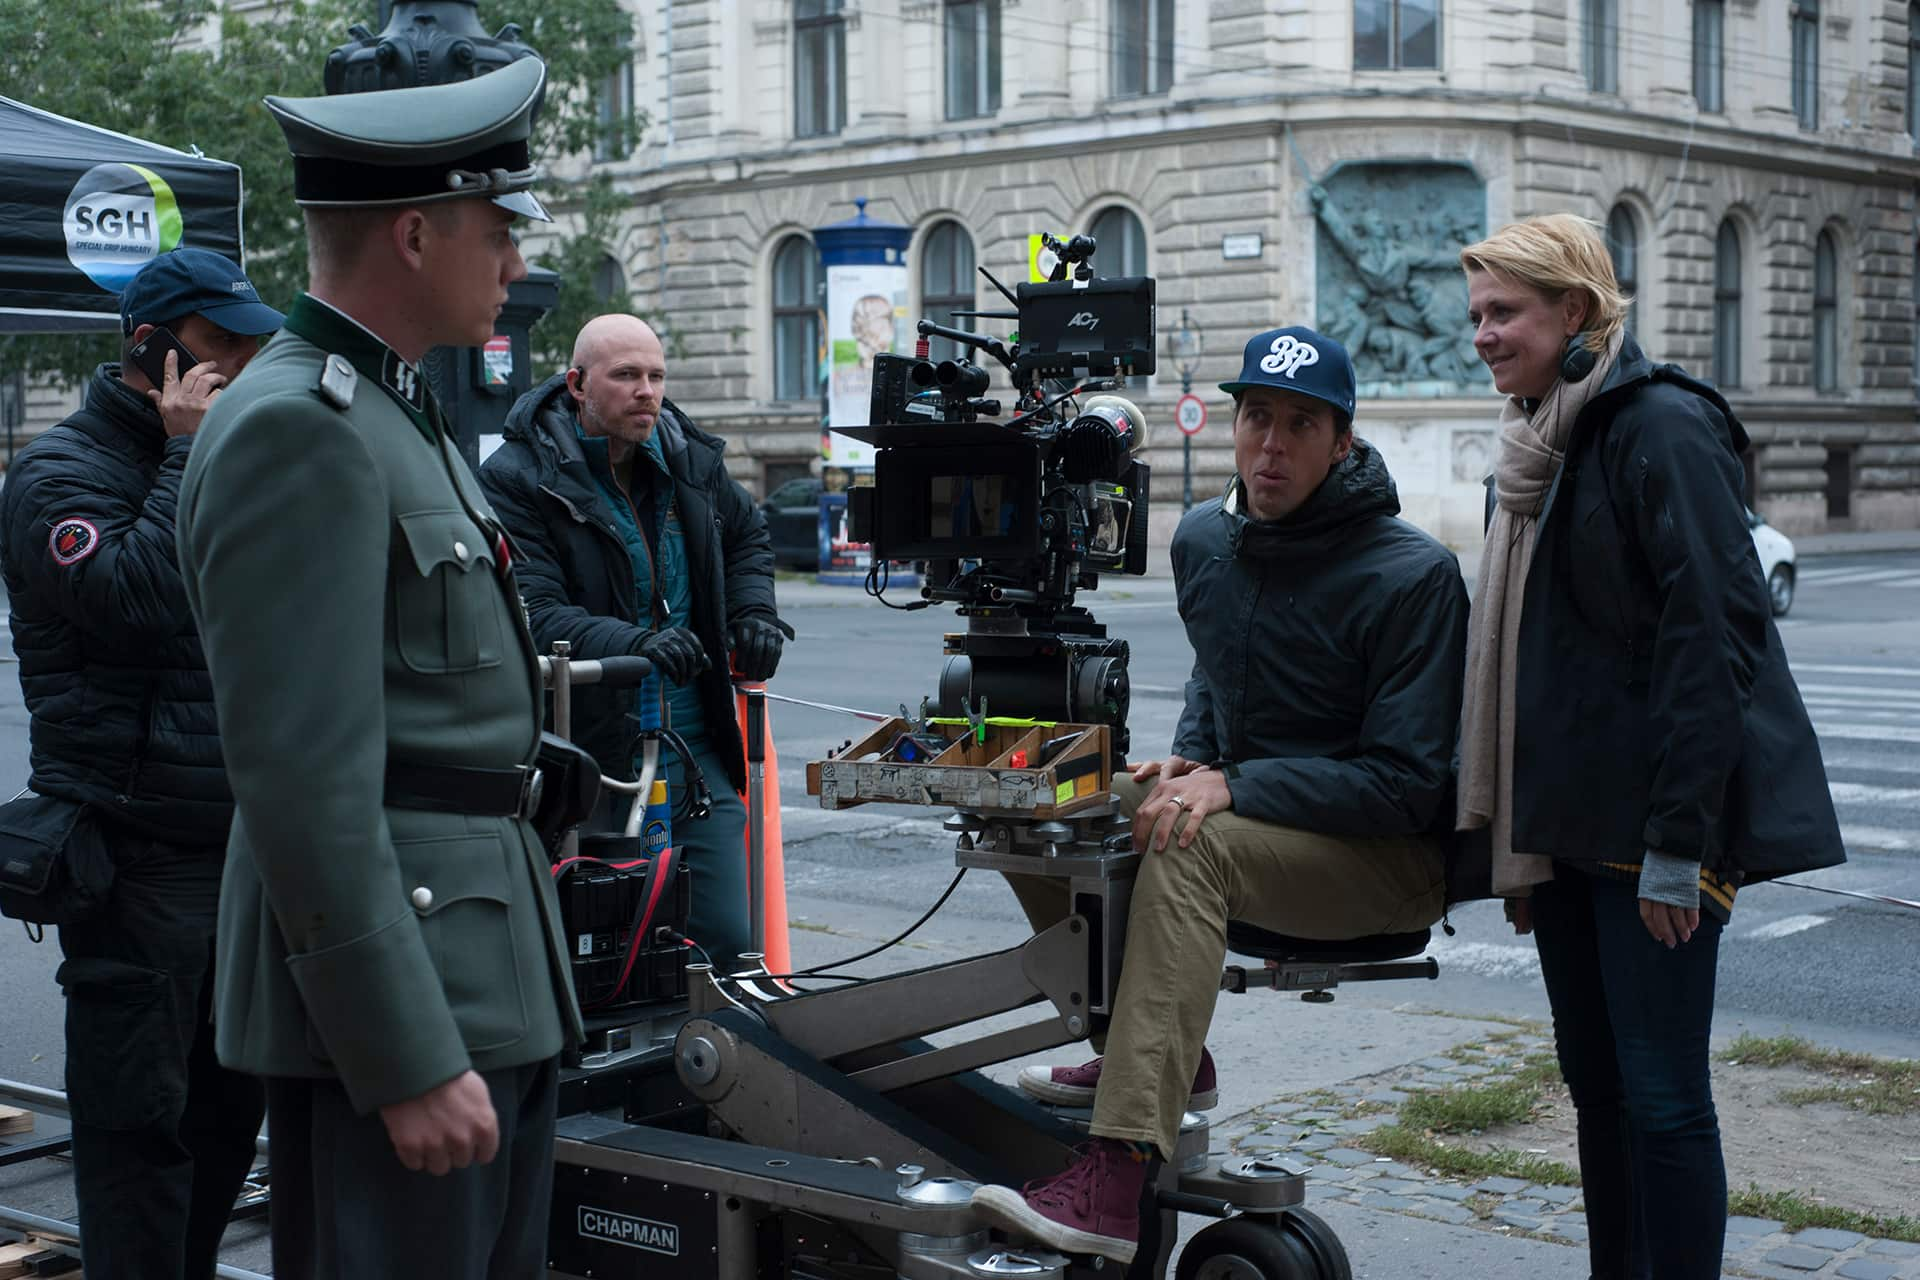 Behind the scenes on the set of X Company Season 3 with Basil Eidenbenz (Edsel), Director Amanda Tapping,